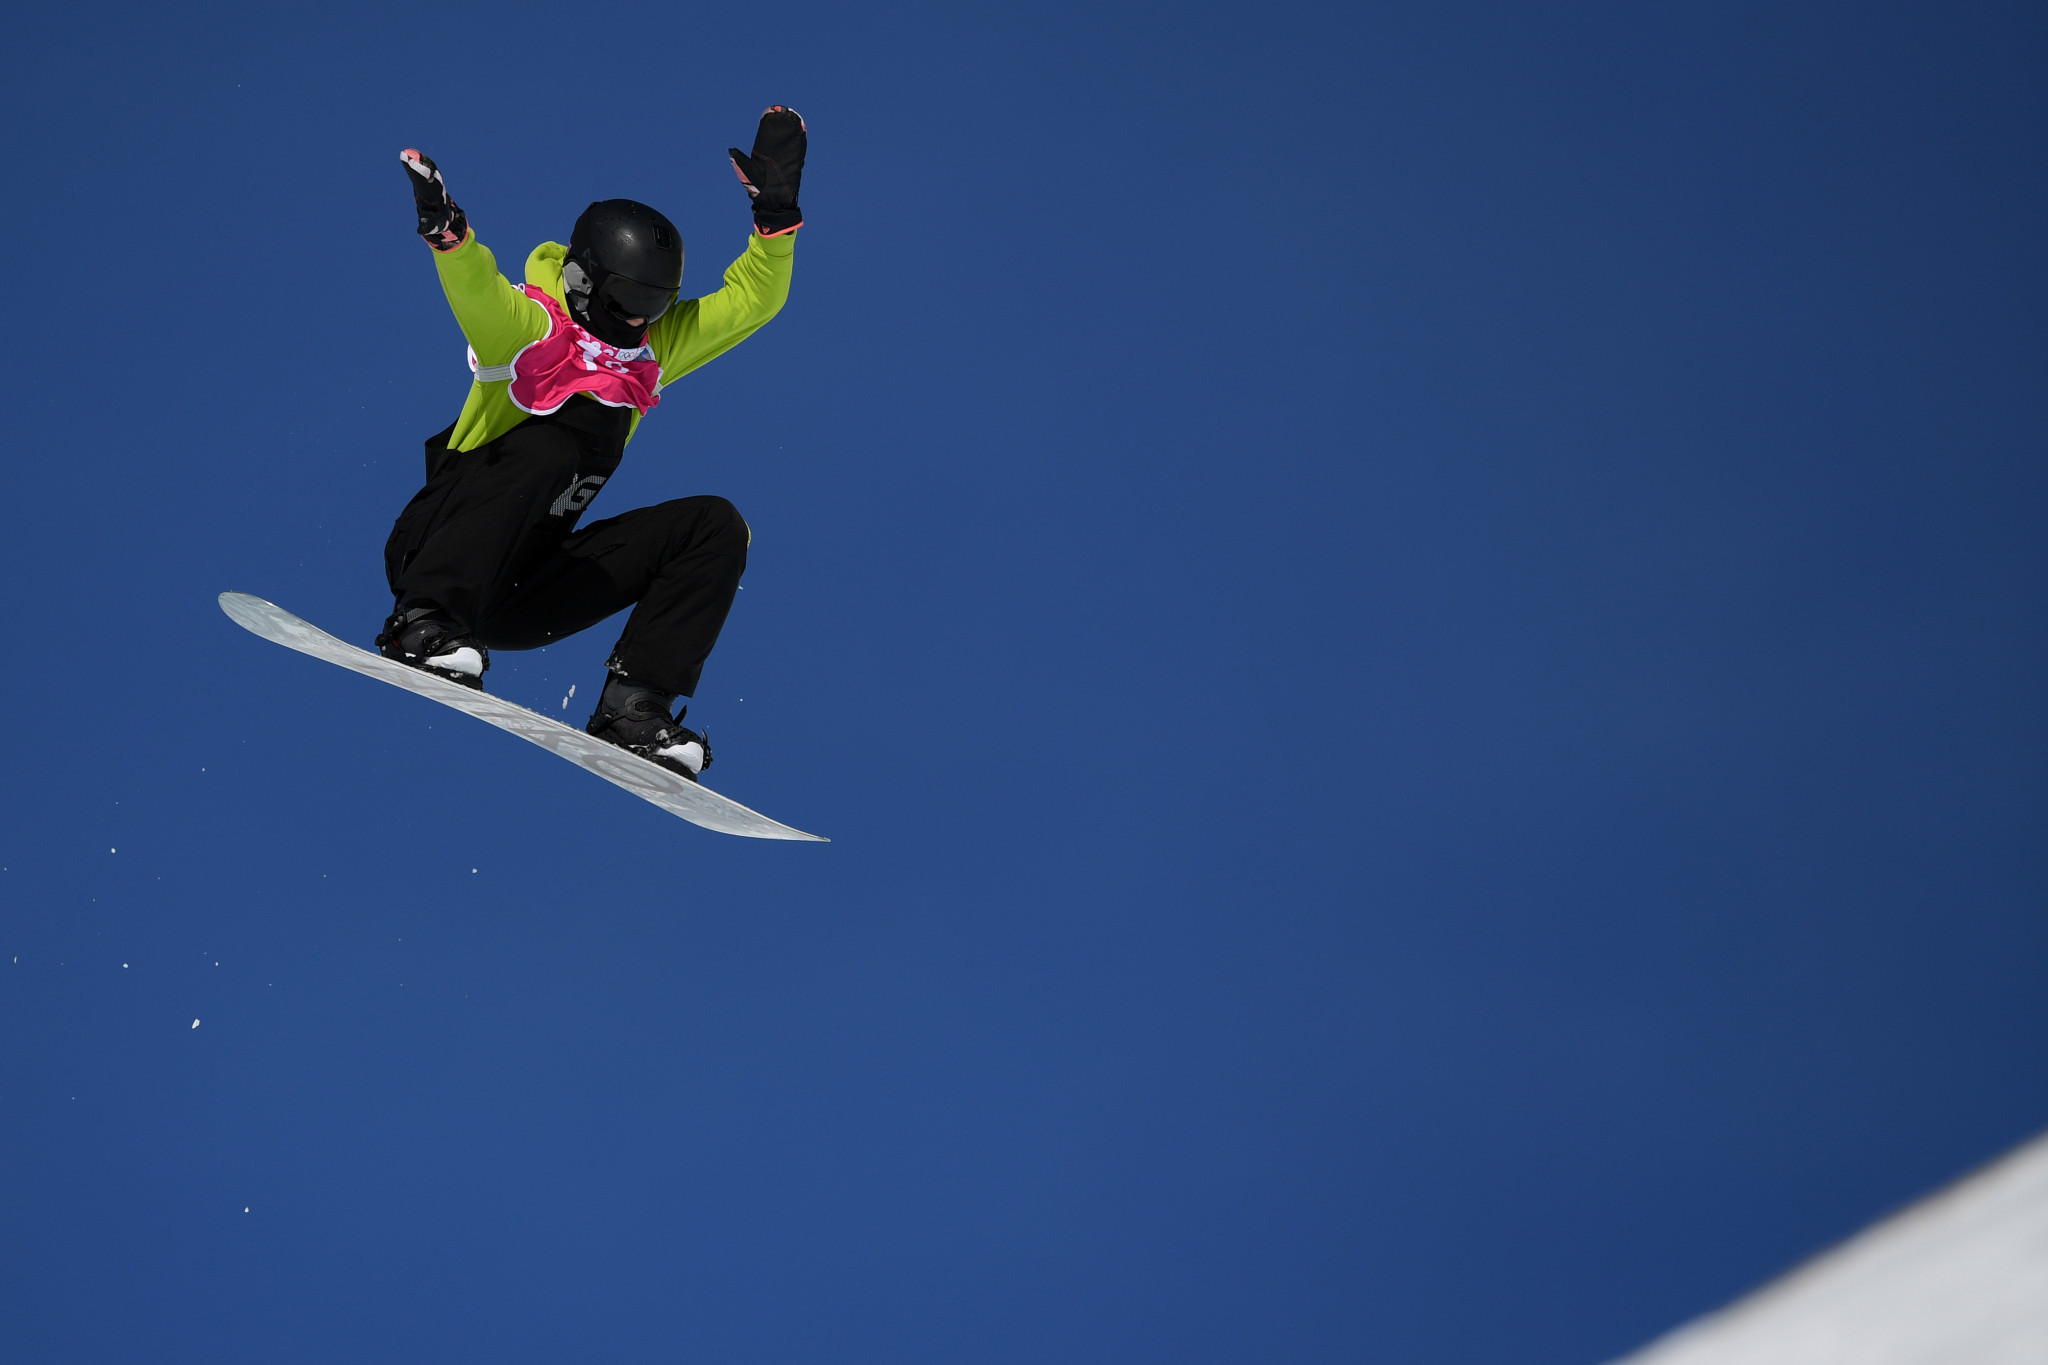 Bianca Gisler finished second in the women's big air qualification ©Getty Images